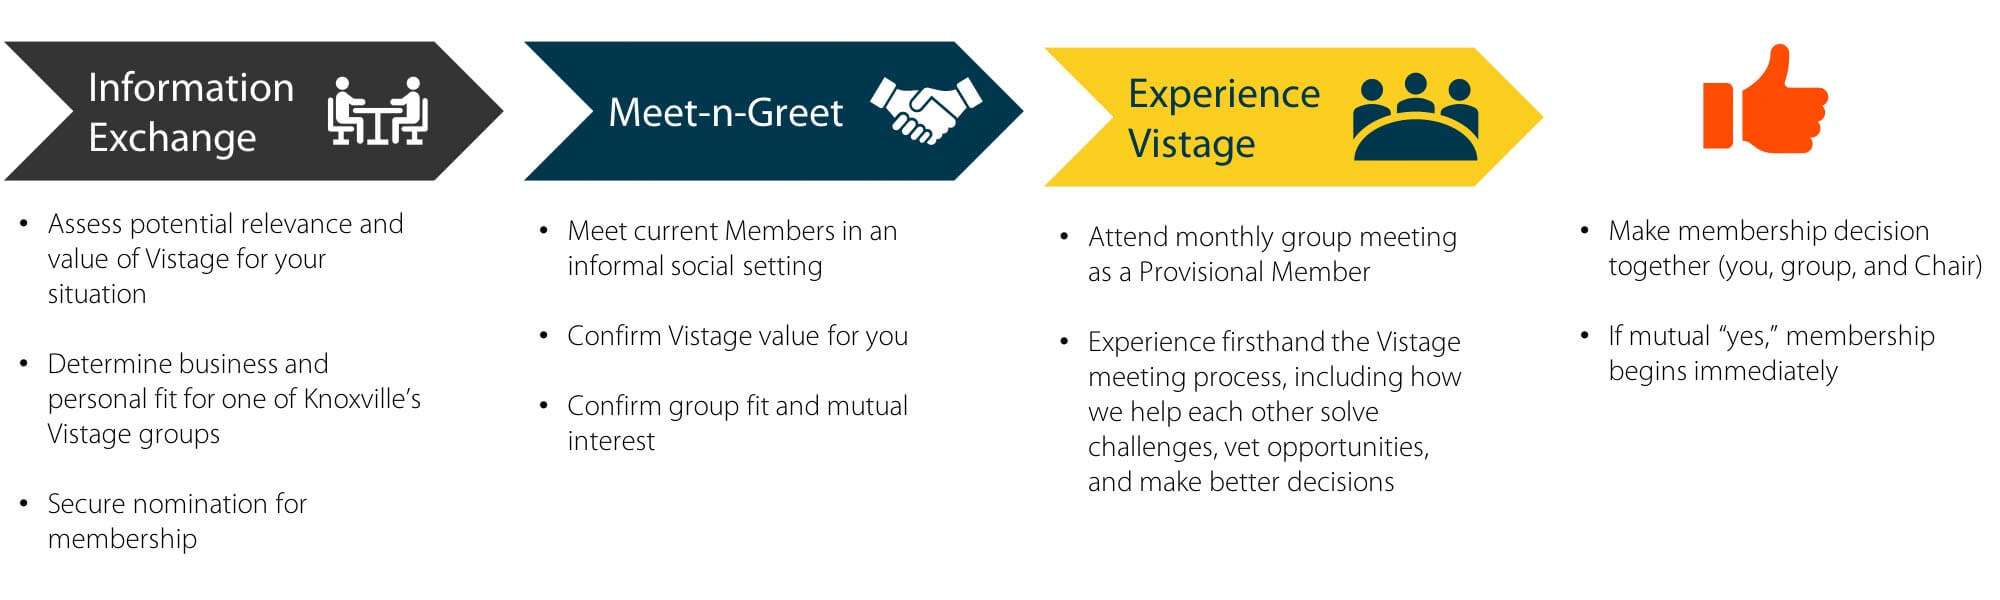 Becoming a Vistage member process flow. Information Exchange, Meet n Greet.